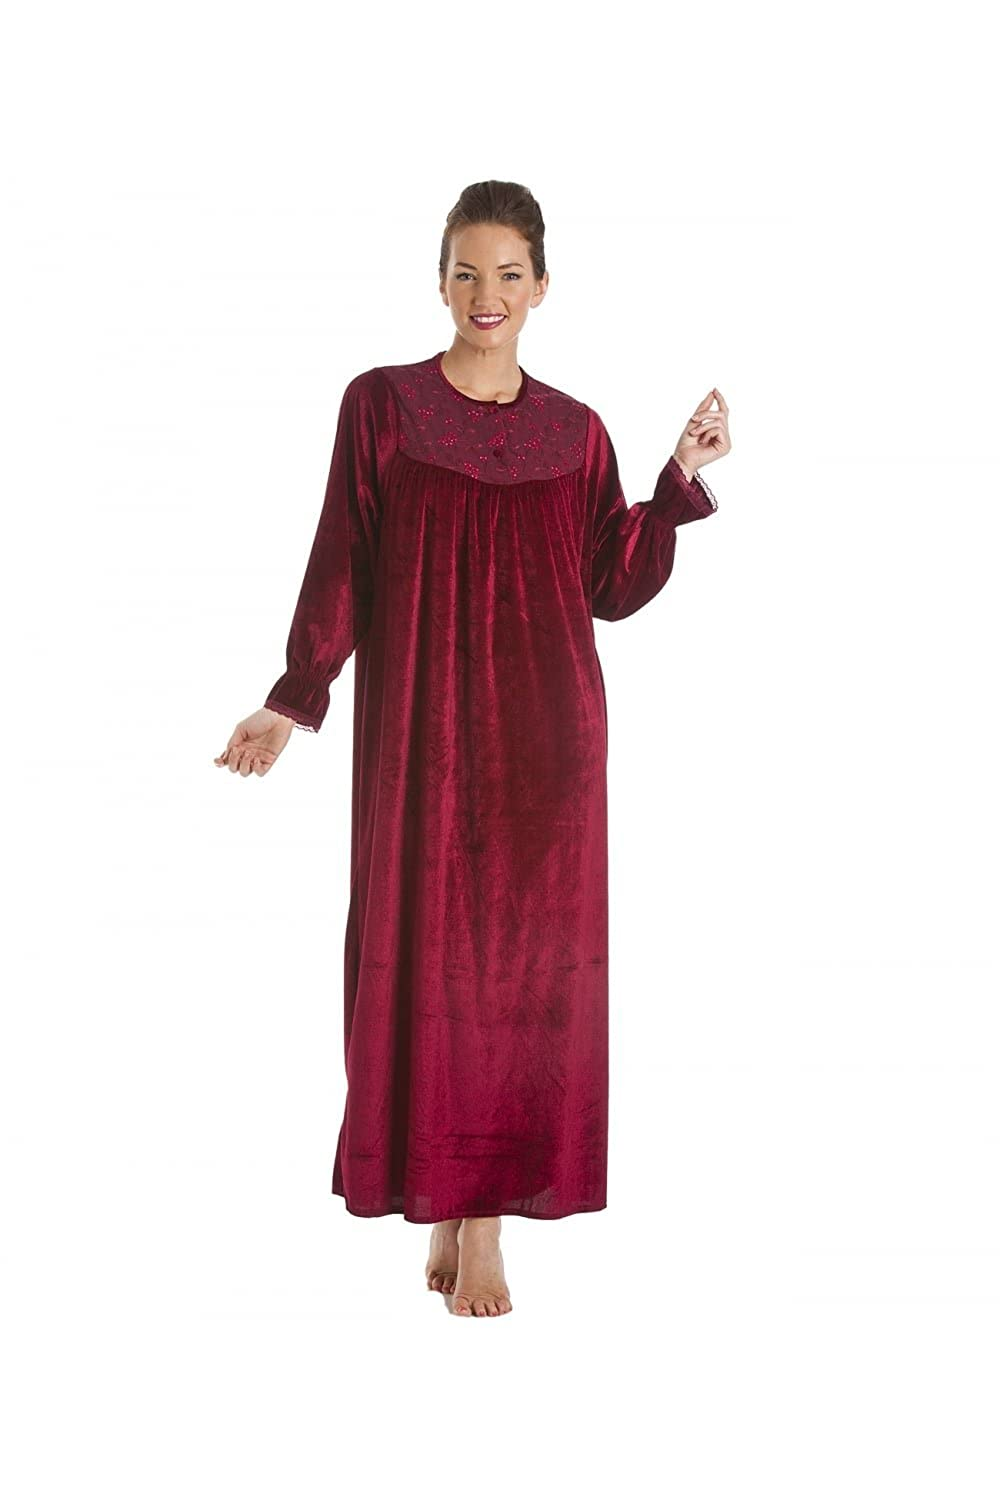 Camille Womens Ladies Red Full Length Velour Nightdress